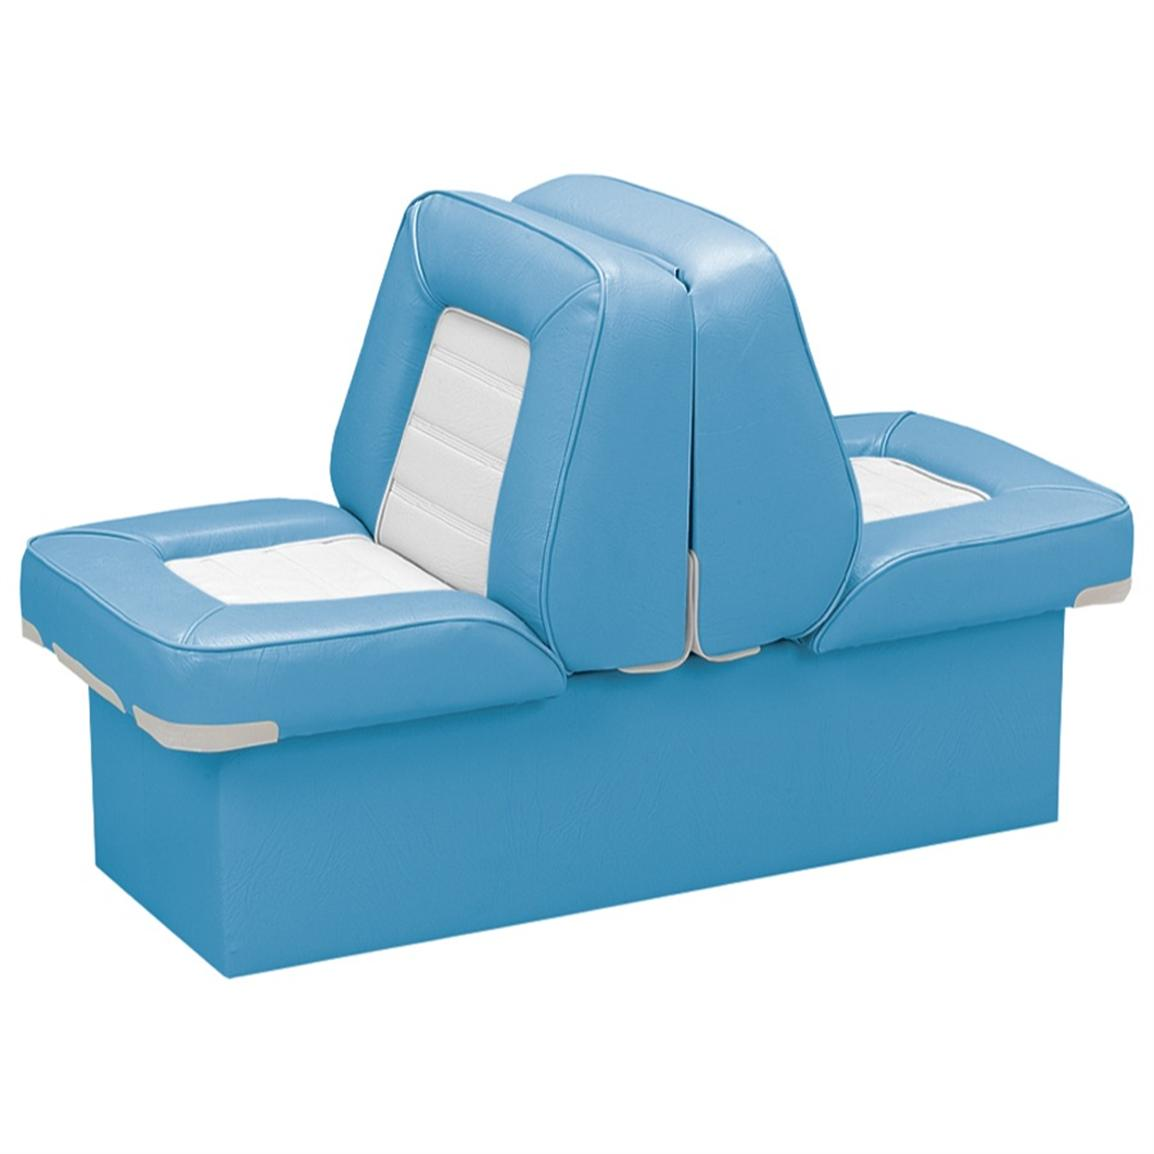 Wise Deluxe Boat Lounge Seat, Light Blue / White